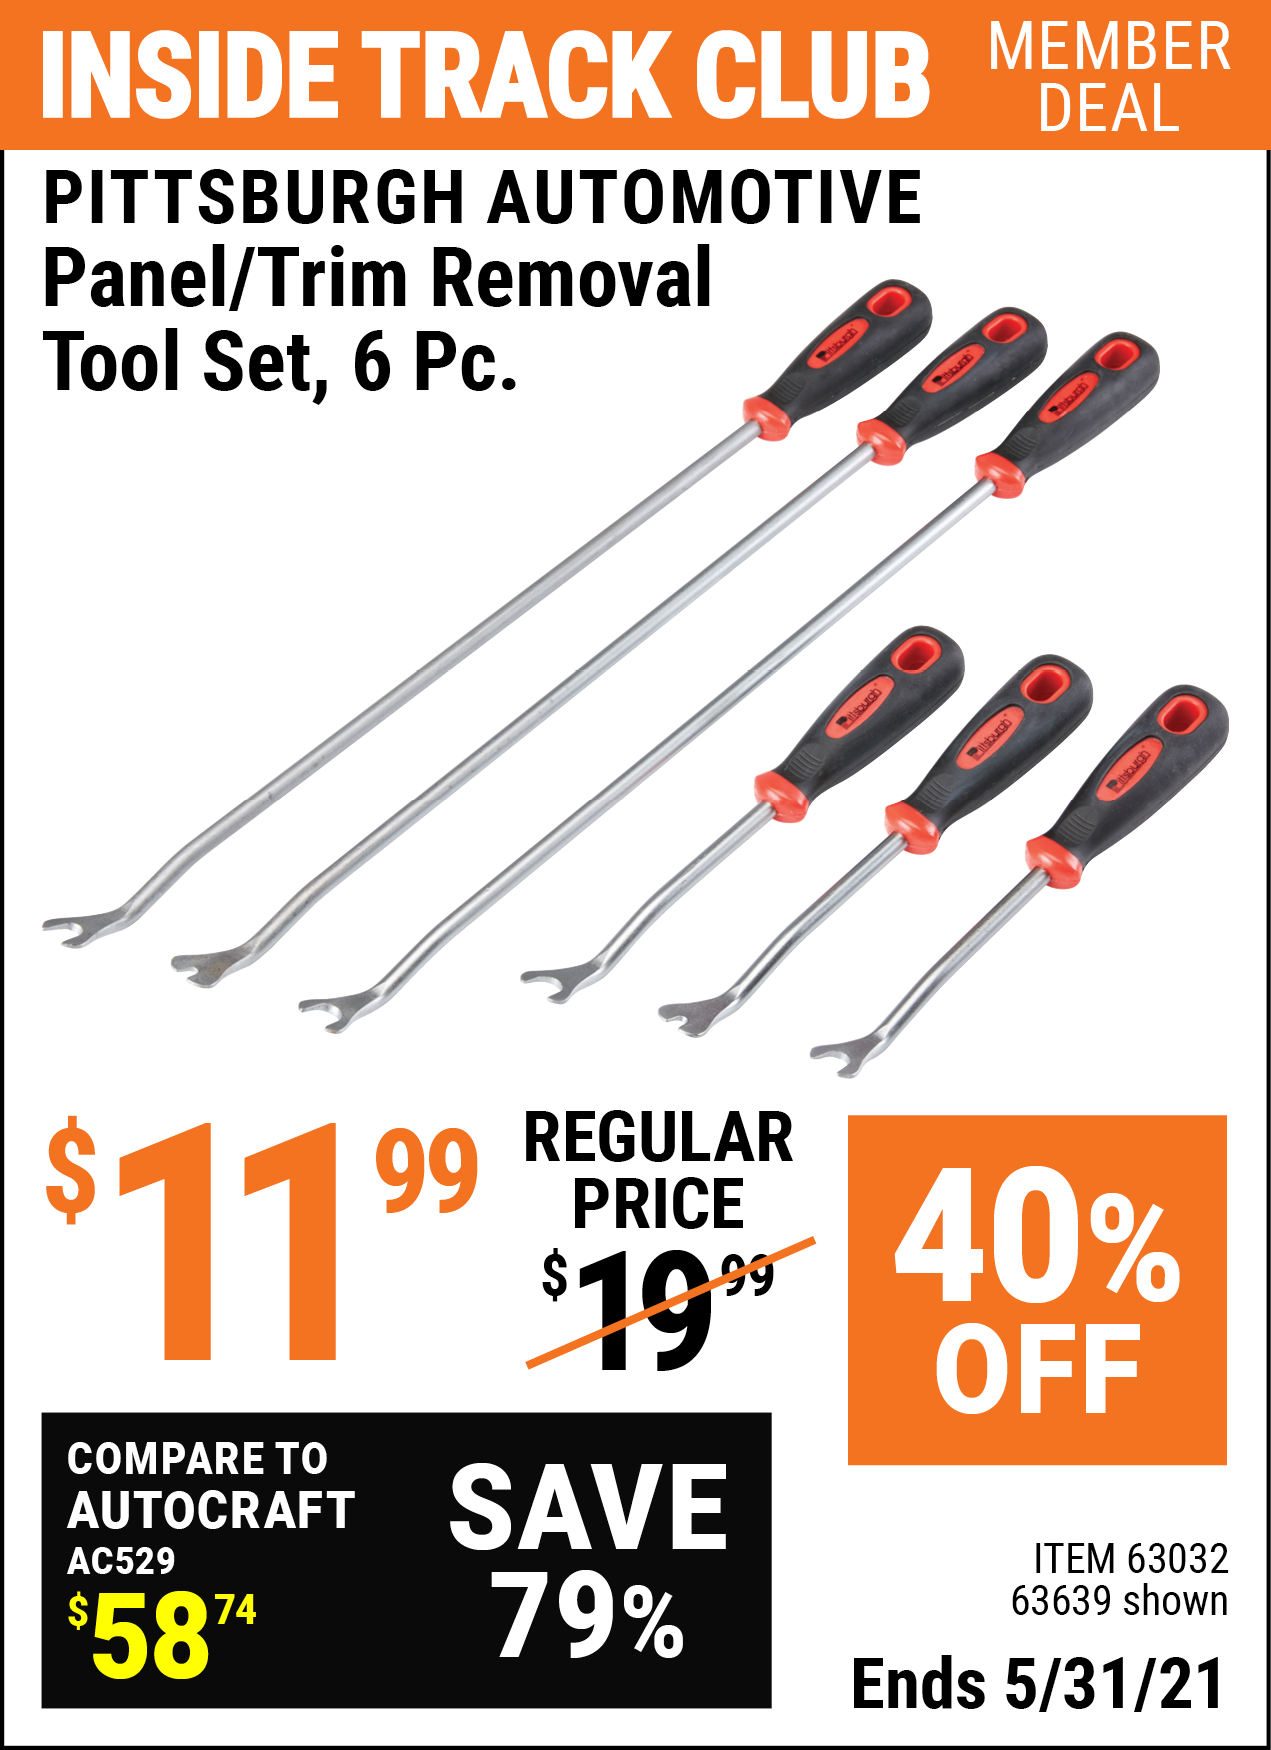 Inside Track Club members can buy the PITTSBURGH AUTOMOTIVE Panel/Trim Removal Tool Set 6 Pc. (Item 63639/63032) for $11.99, valid through 5/31/2021.